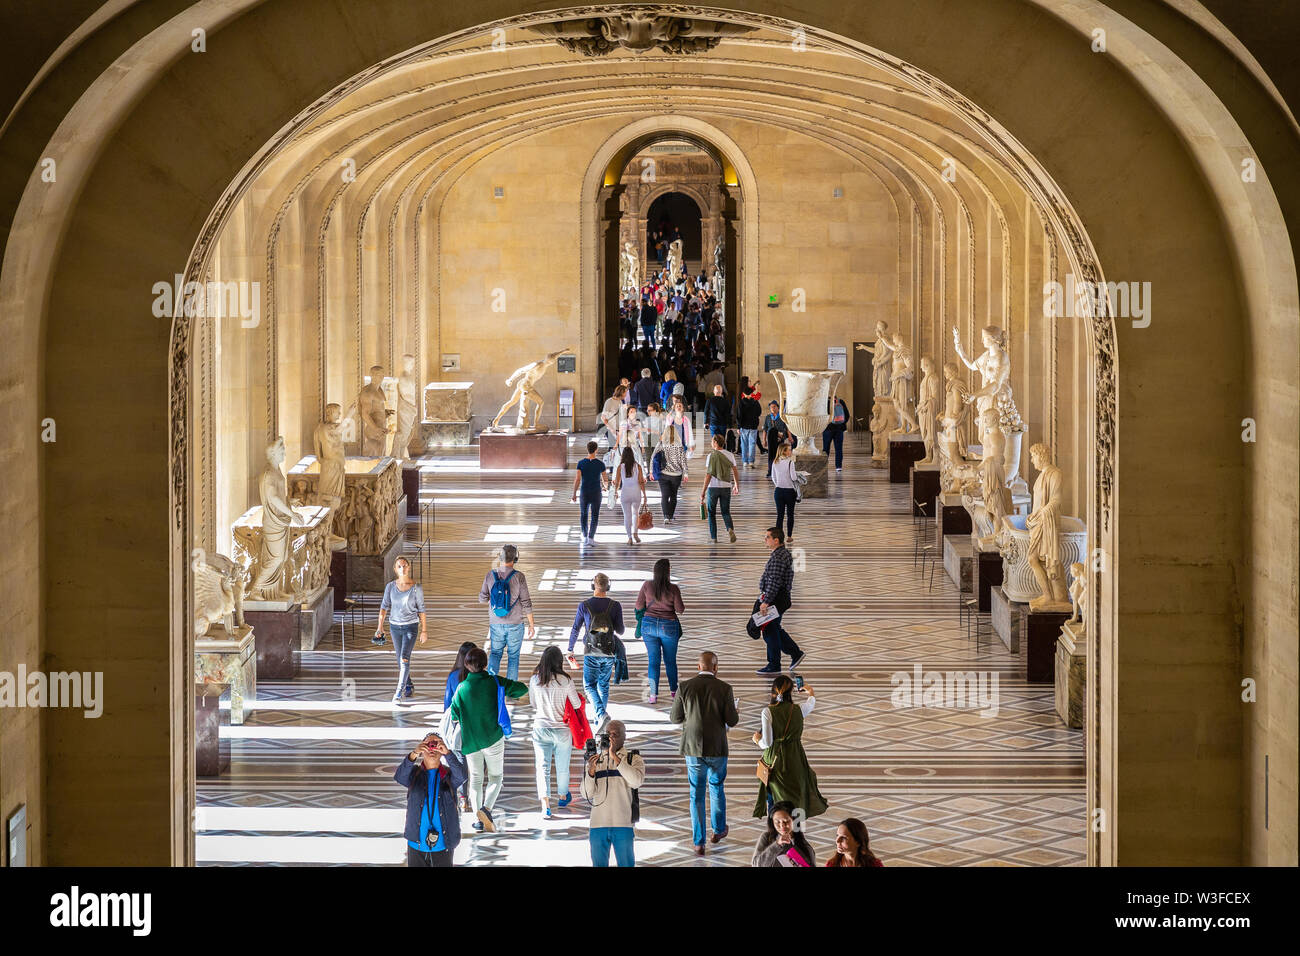 Paris, France - September 30, 2018: Looking through a big gate to tourists walking on passage surrounding by exhibition of old sculptures inside Louvr - Stock Image